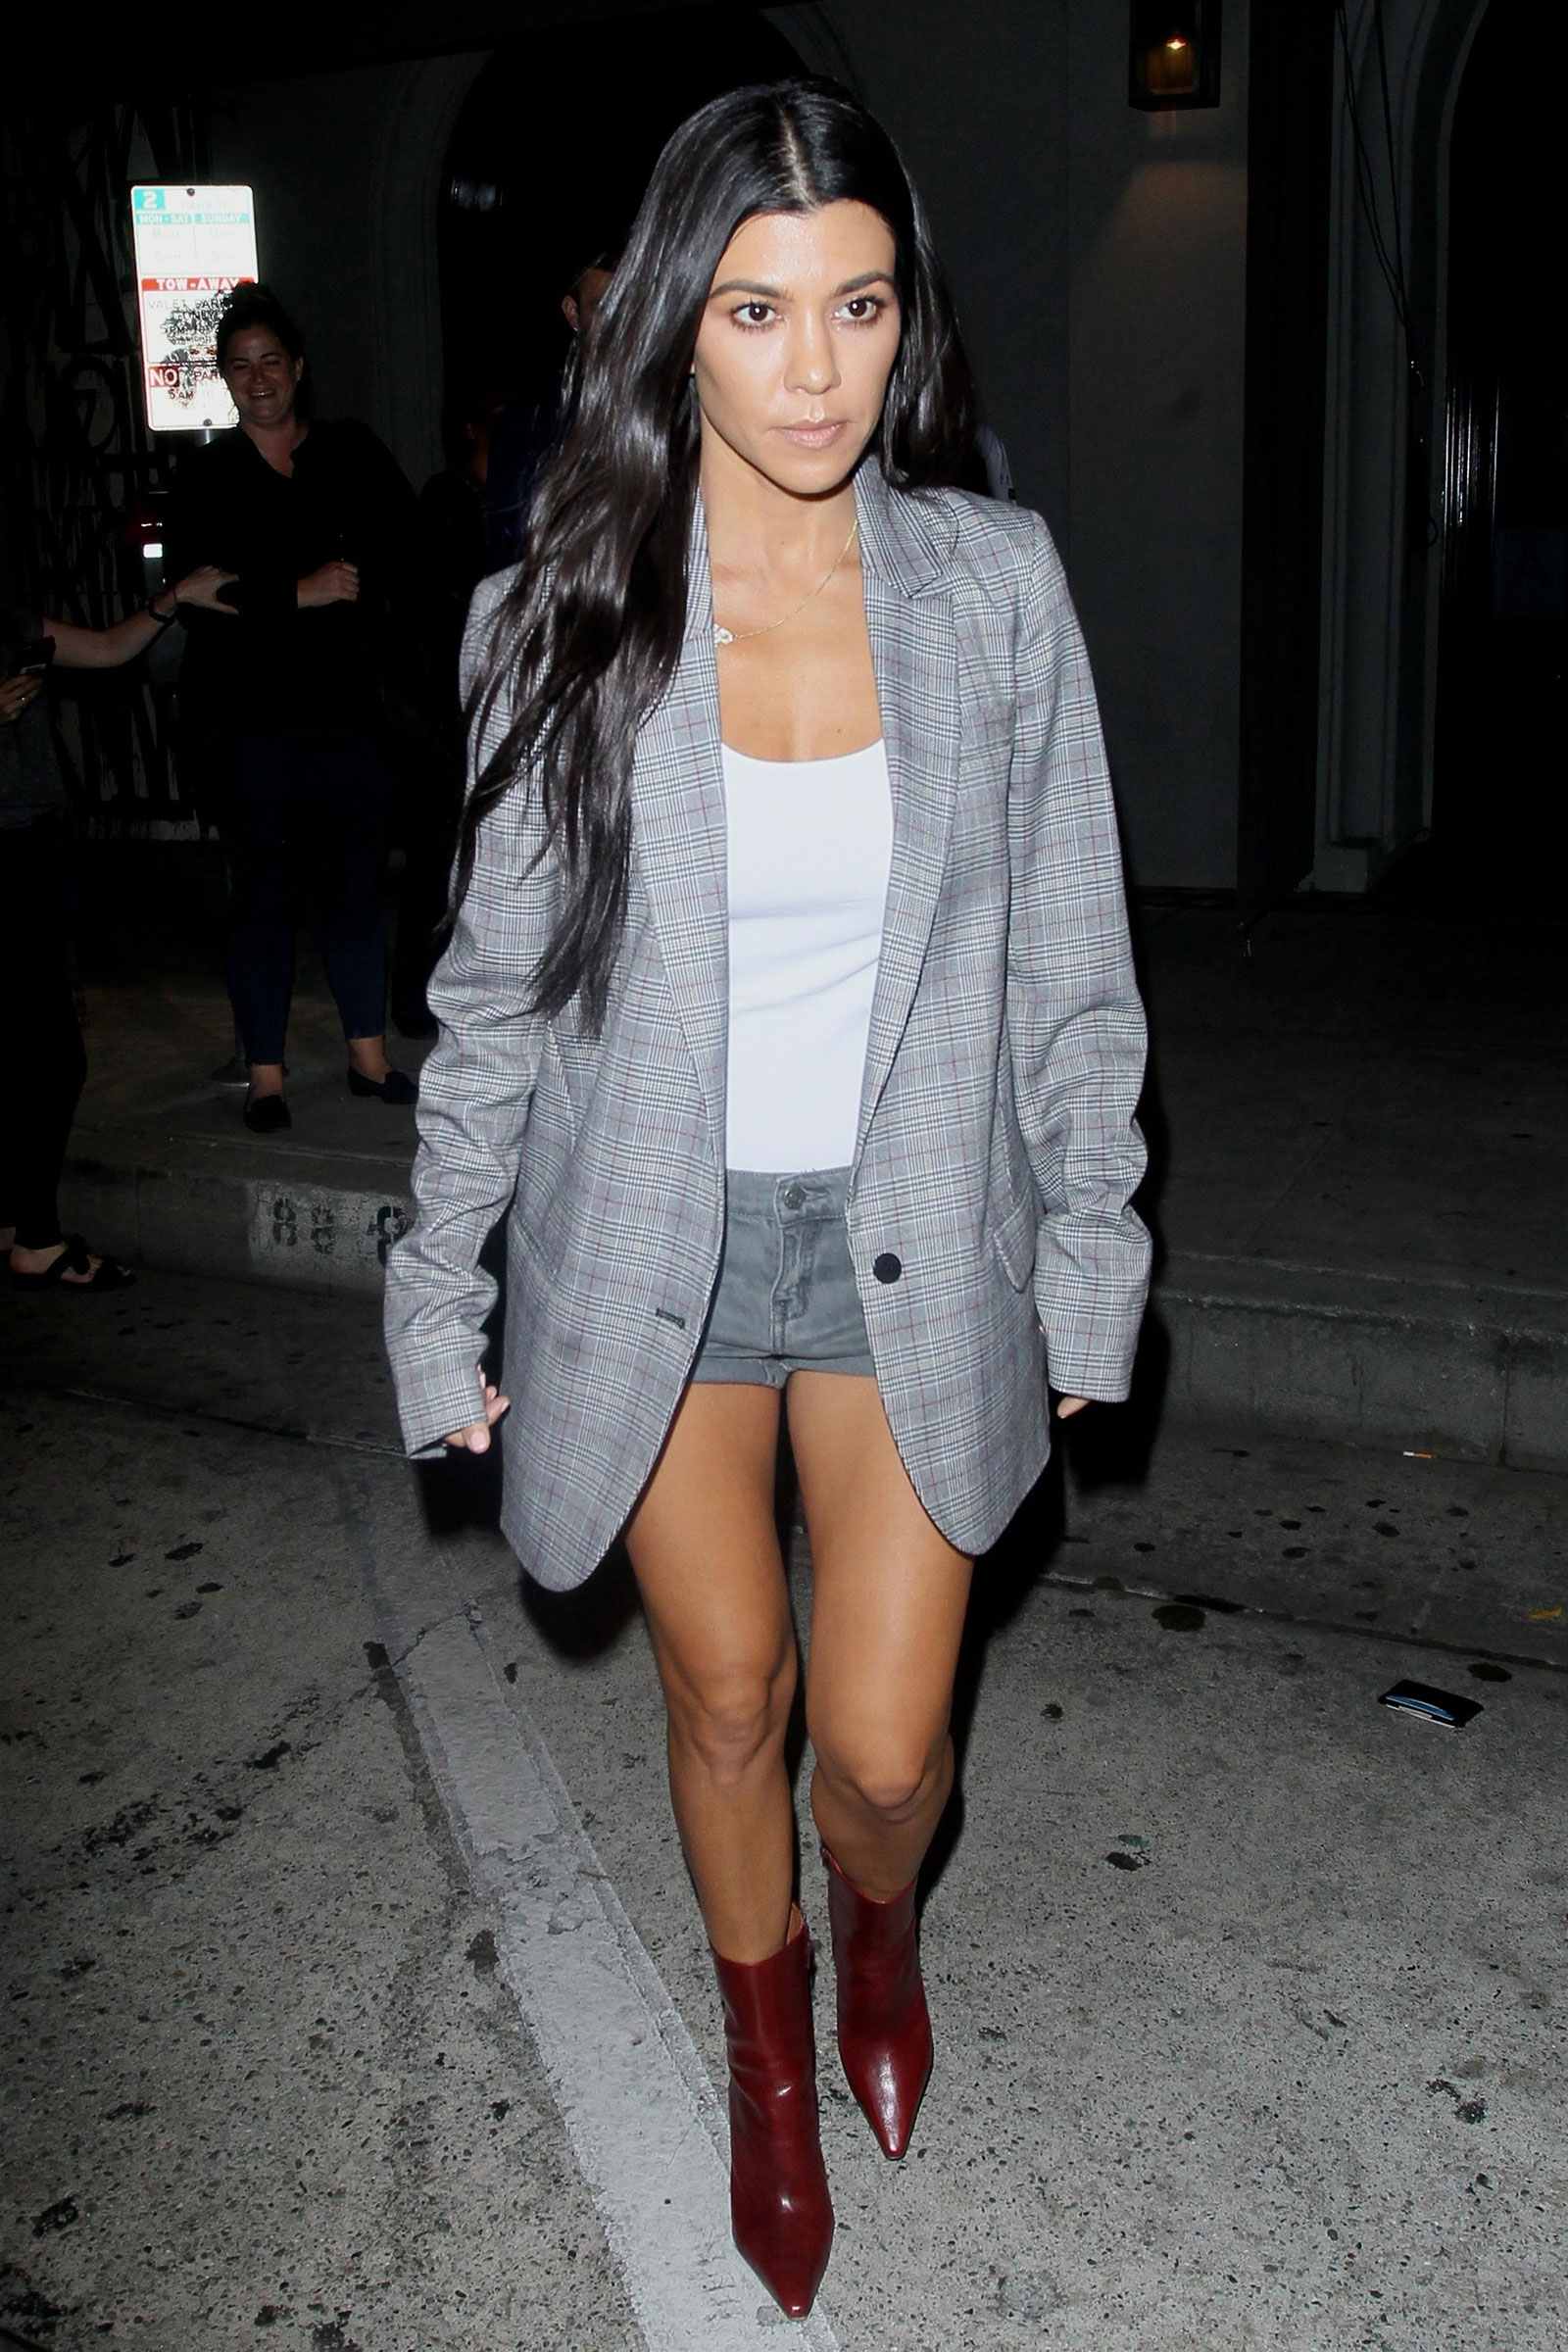 Kourtney Kardashian is seen leaving a restaurant in an oversized blazer, denim shorts and red ankle boots.